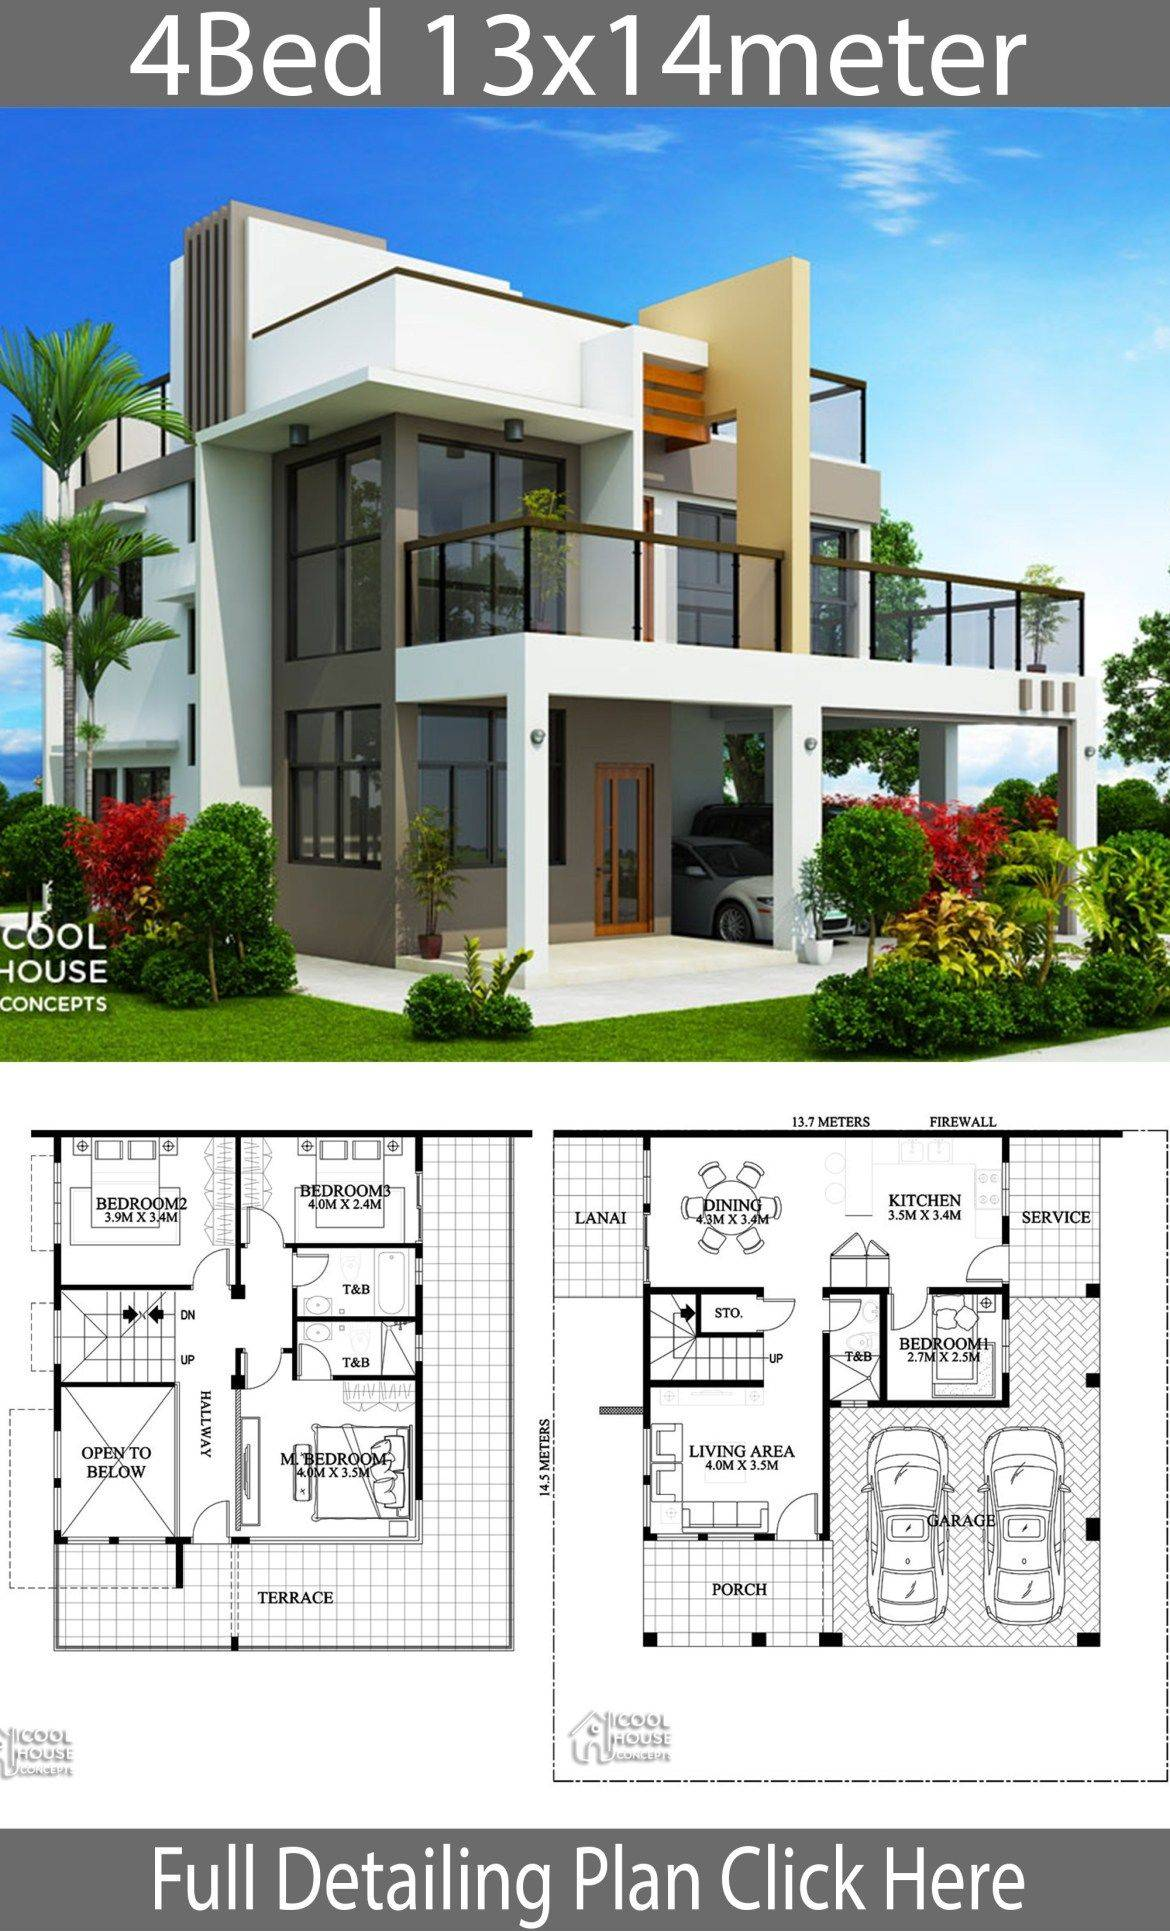 Contemporary 4 Bedroom House Plans Beautiful Home Design Plan 13x14m with 4 Bedrooms